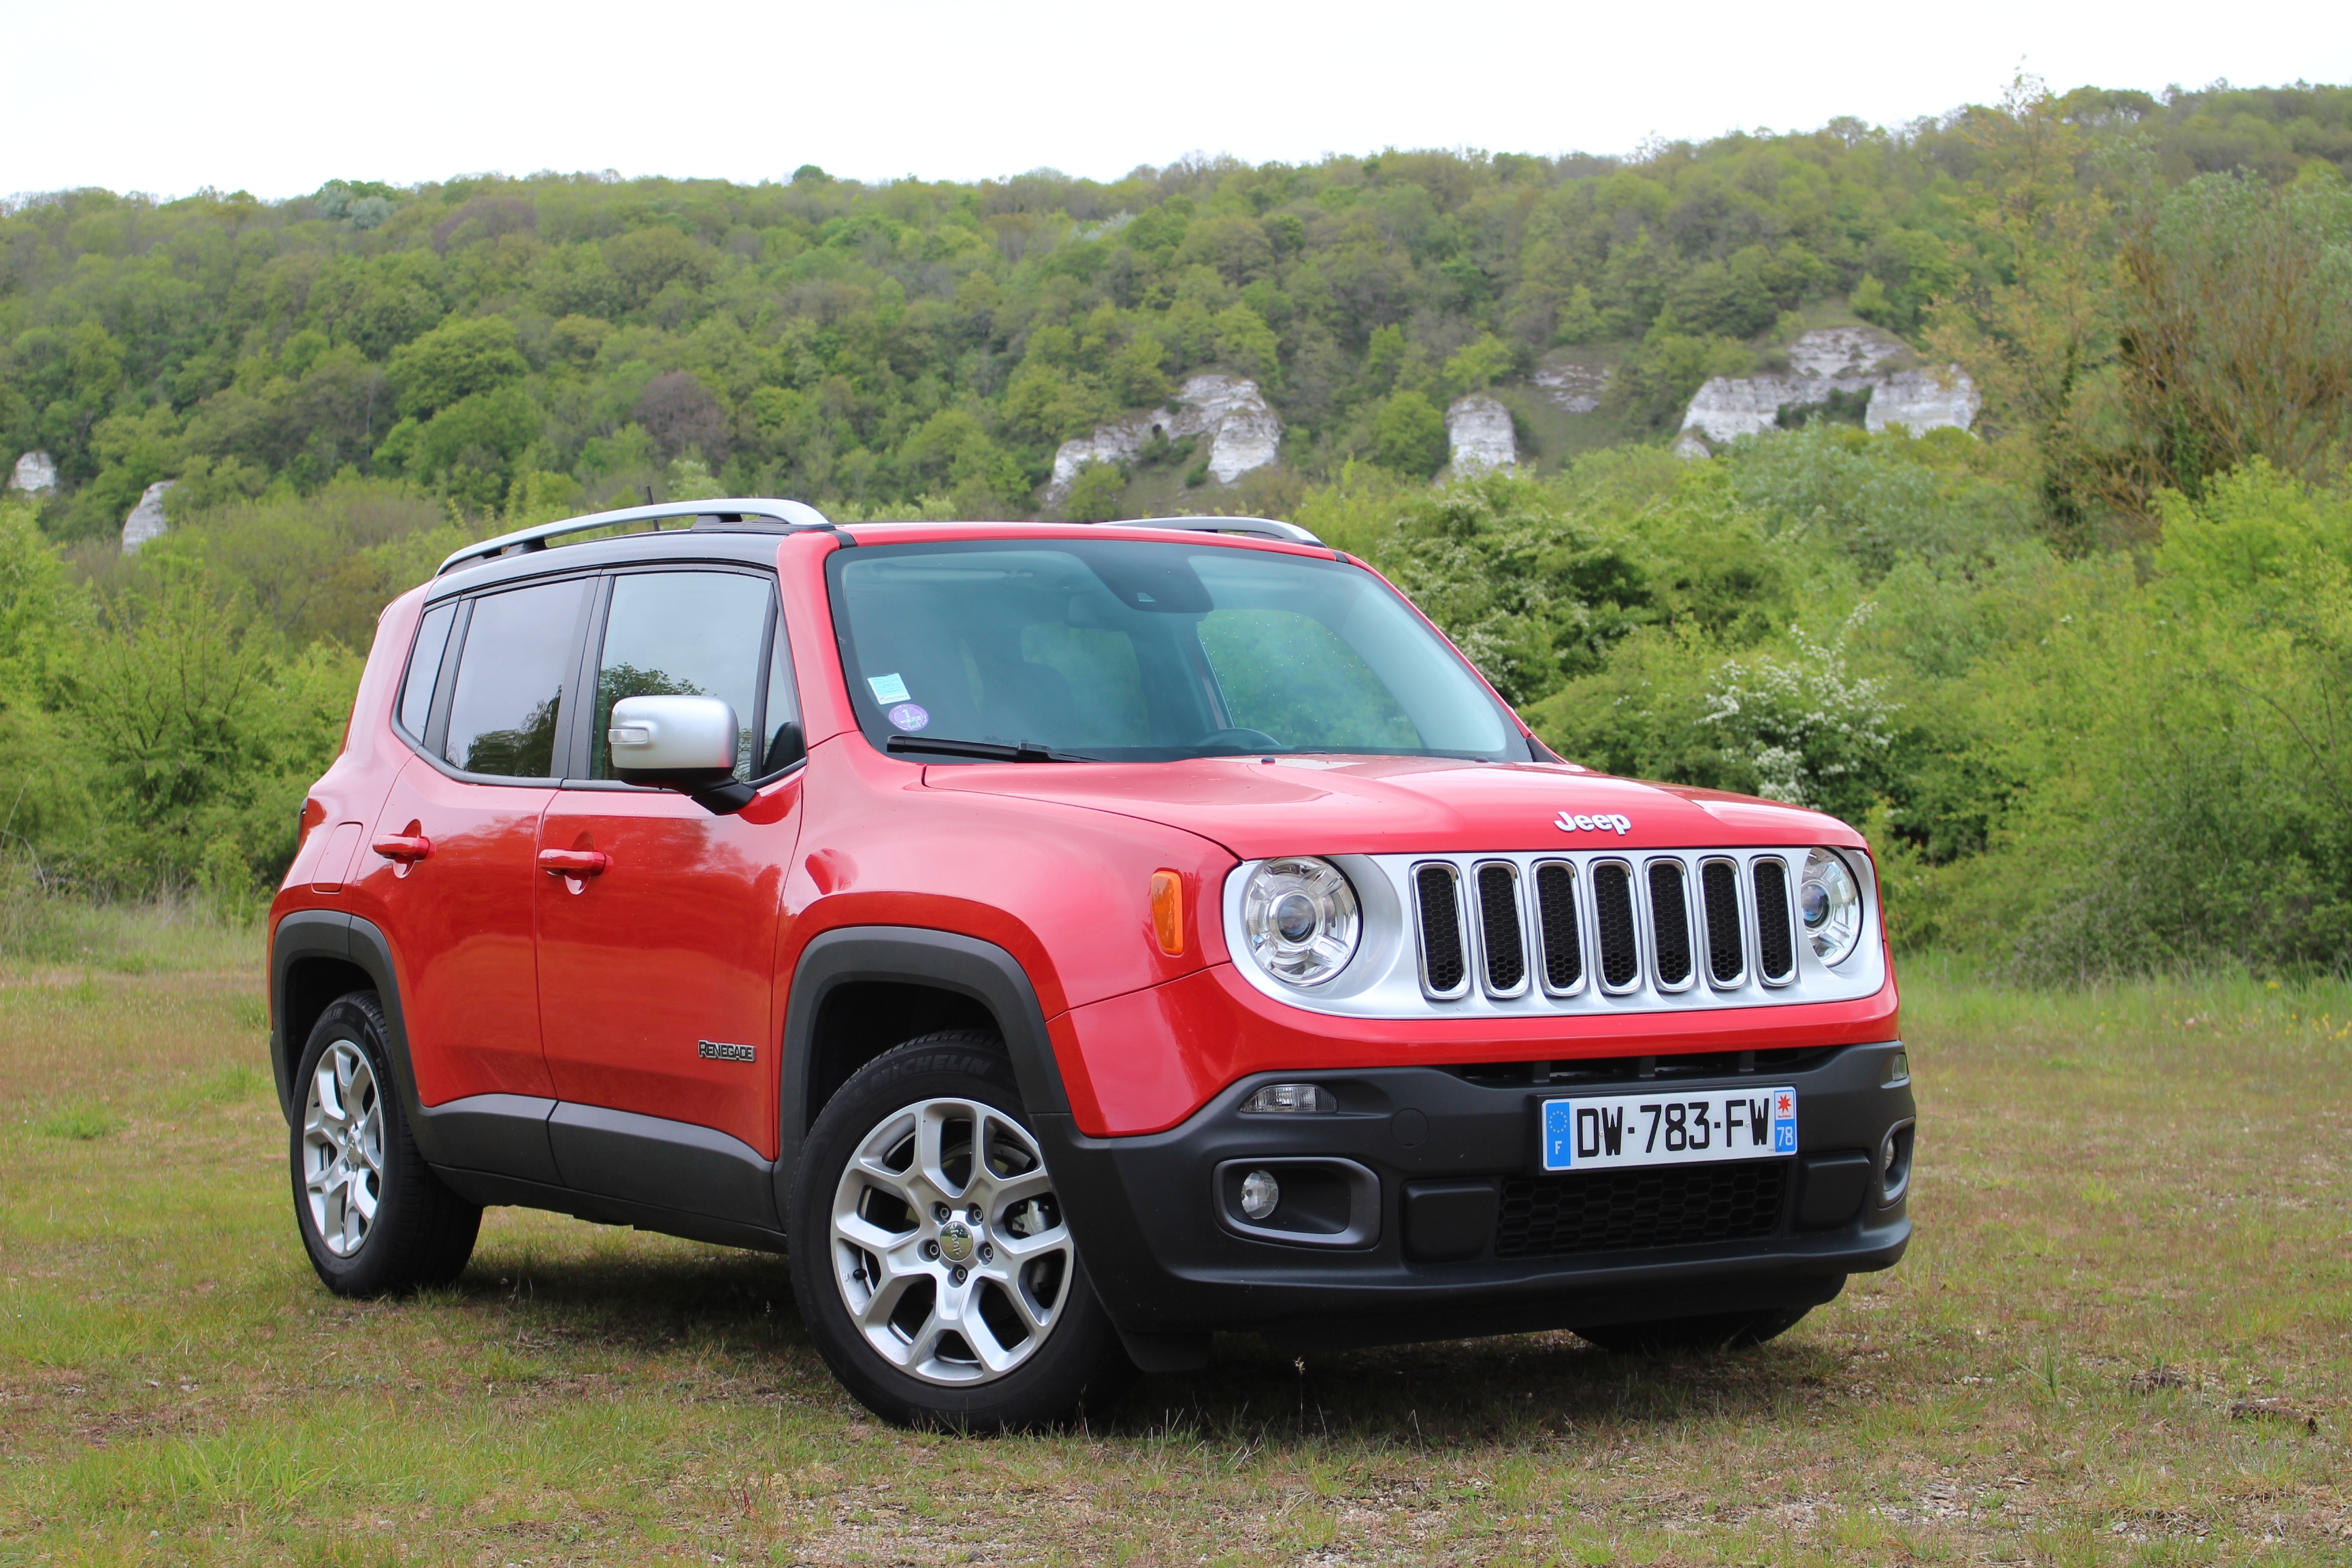 Essai Jeep Renegade 1 4 Multiair 140 2017 La Jeep Slim